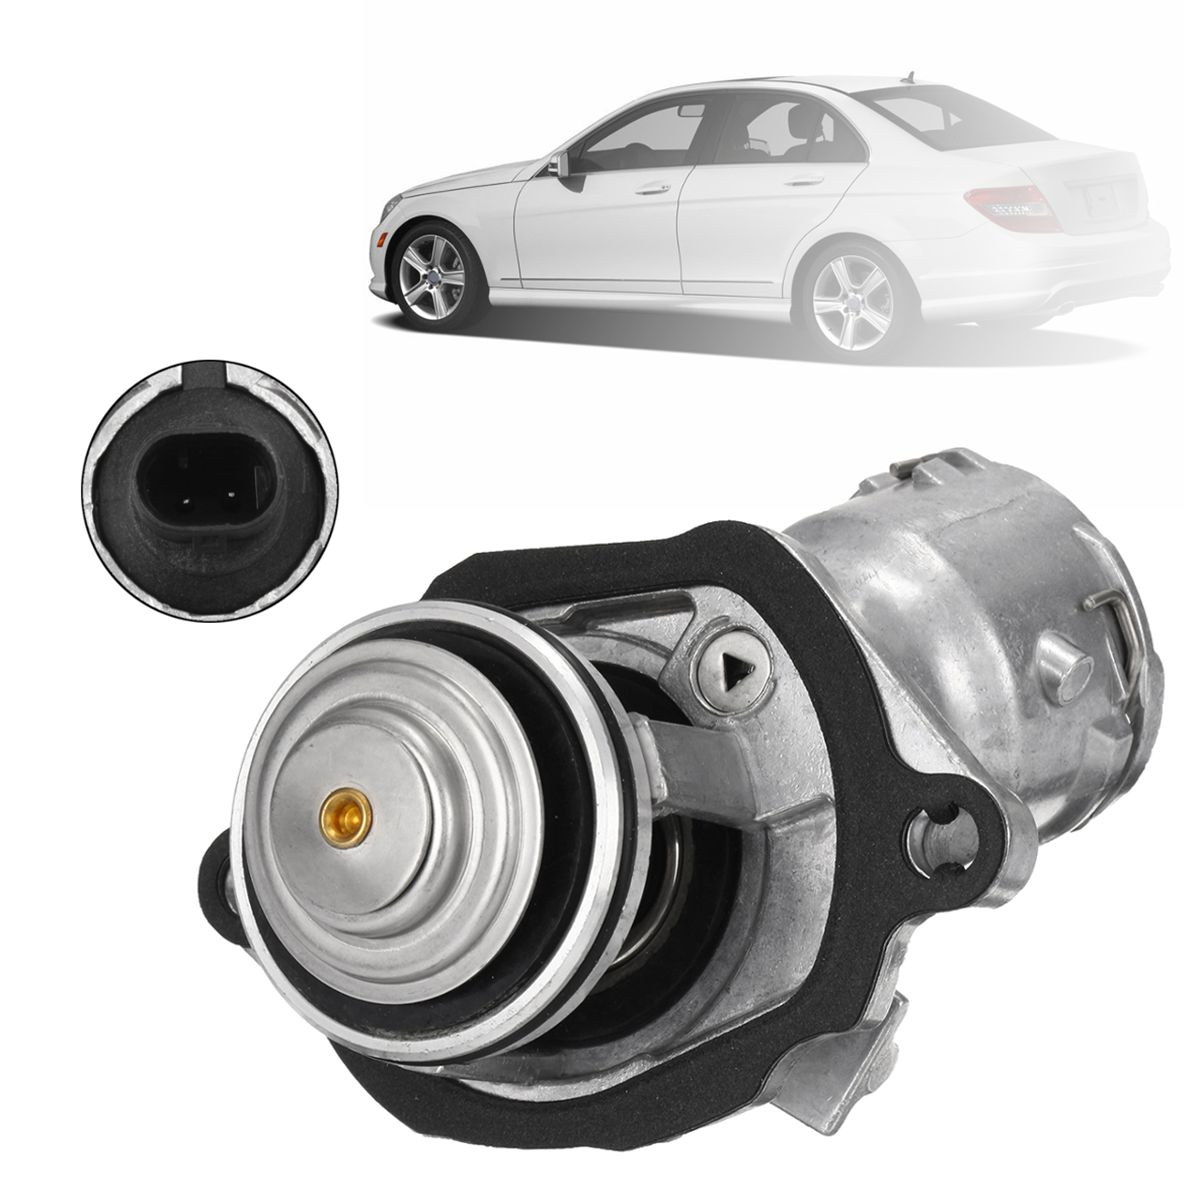 2722000115 272 200 01 15 engine coolant thermostat with sensor Mercedes Benz Engine Sludge 2722000115 272 200 01 15 engine coolant thermostat with sensor gasket for mercedes benz slk350 glk350 slk300 slk280 clk350